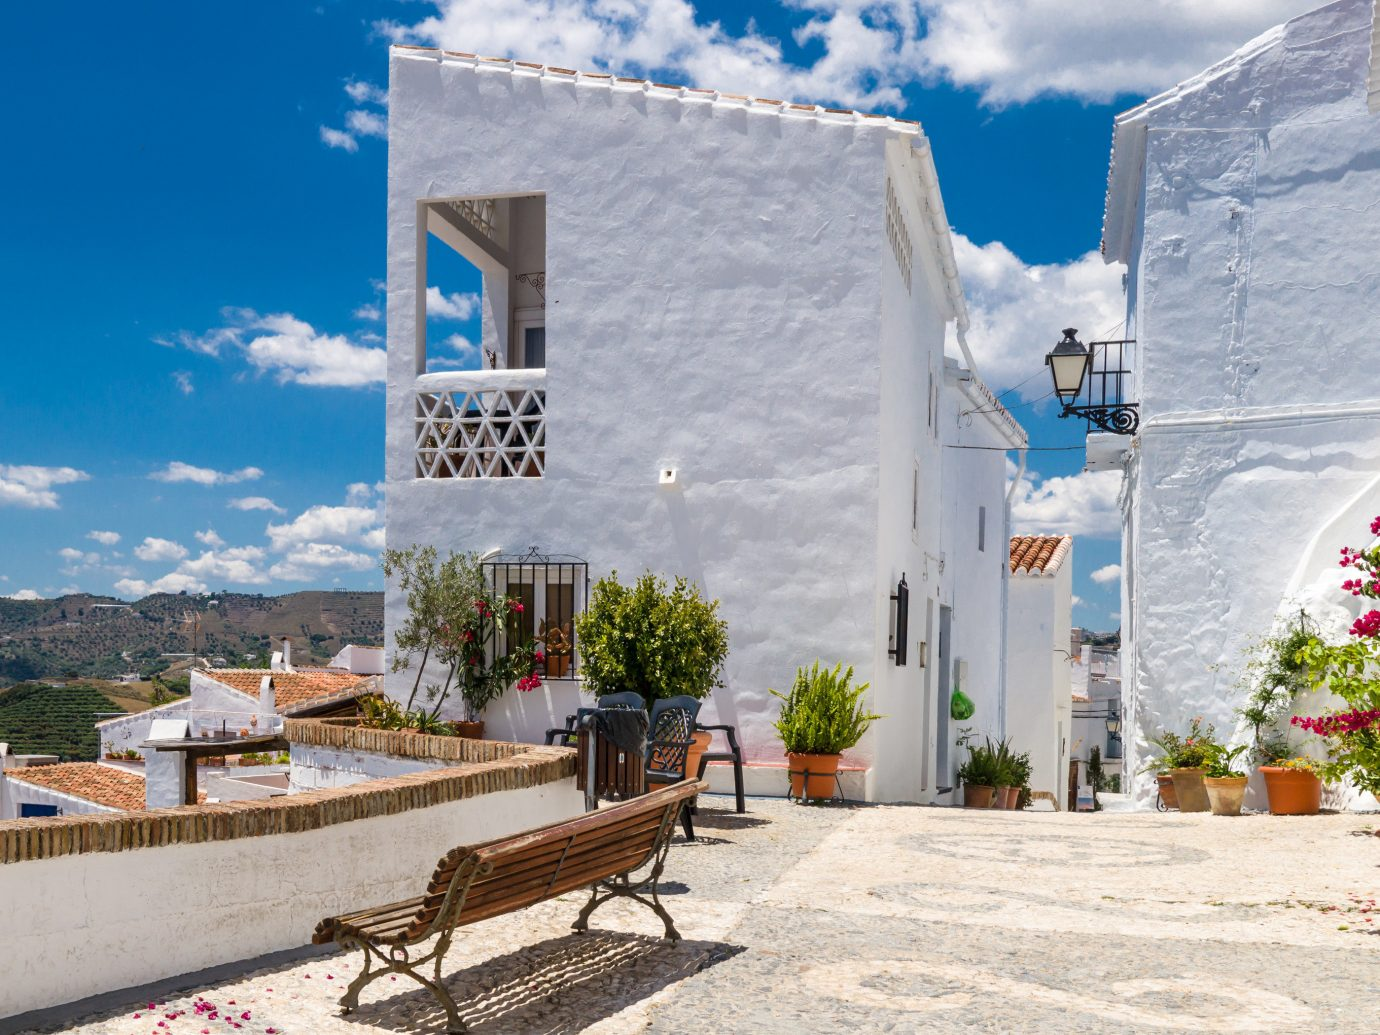 europe Spain Trip Ideas property sky home real estate house facade apartment estate Villa cottage vacation tourism building condominium elevation roof